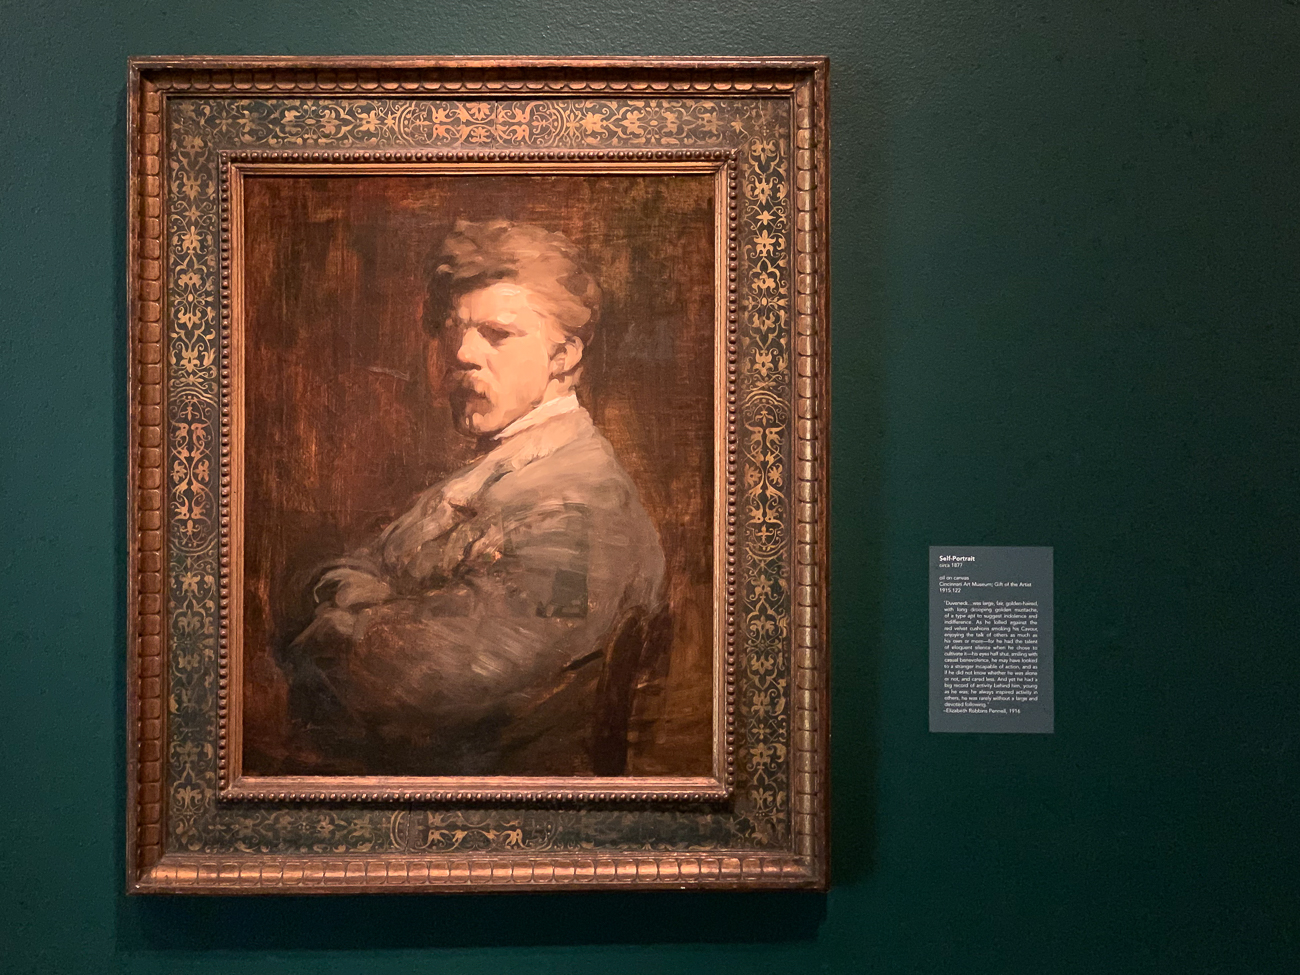 Frank Duveneck: American Master will be open to the public December 19th & 20th, and December 26th & 27th. It will be on display until March 28th, 2021 after the museum fully reopens. It is a ticketed exhibition and free to members. / Image: Phil Armstrong, Cincinnati Refined // Published: 12.19.20